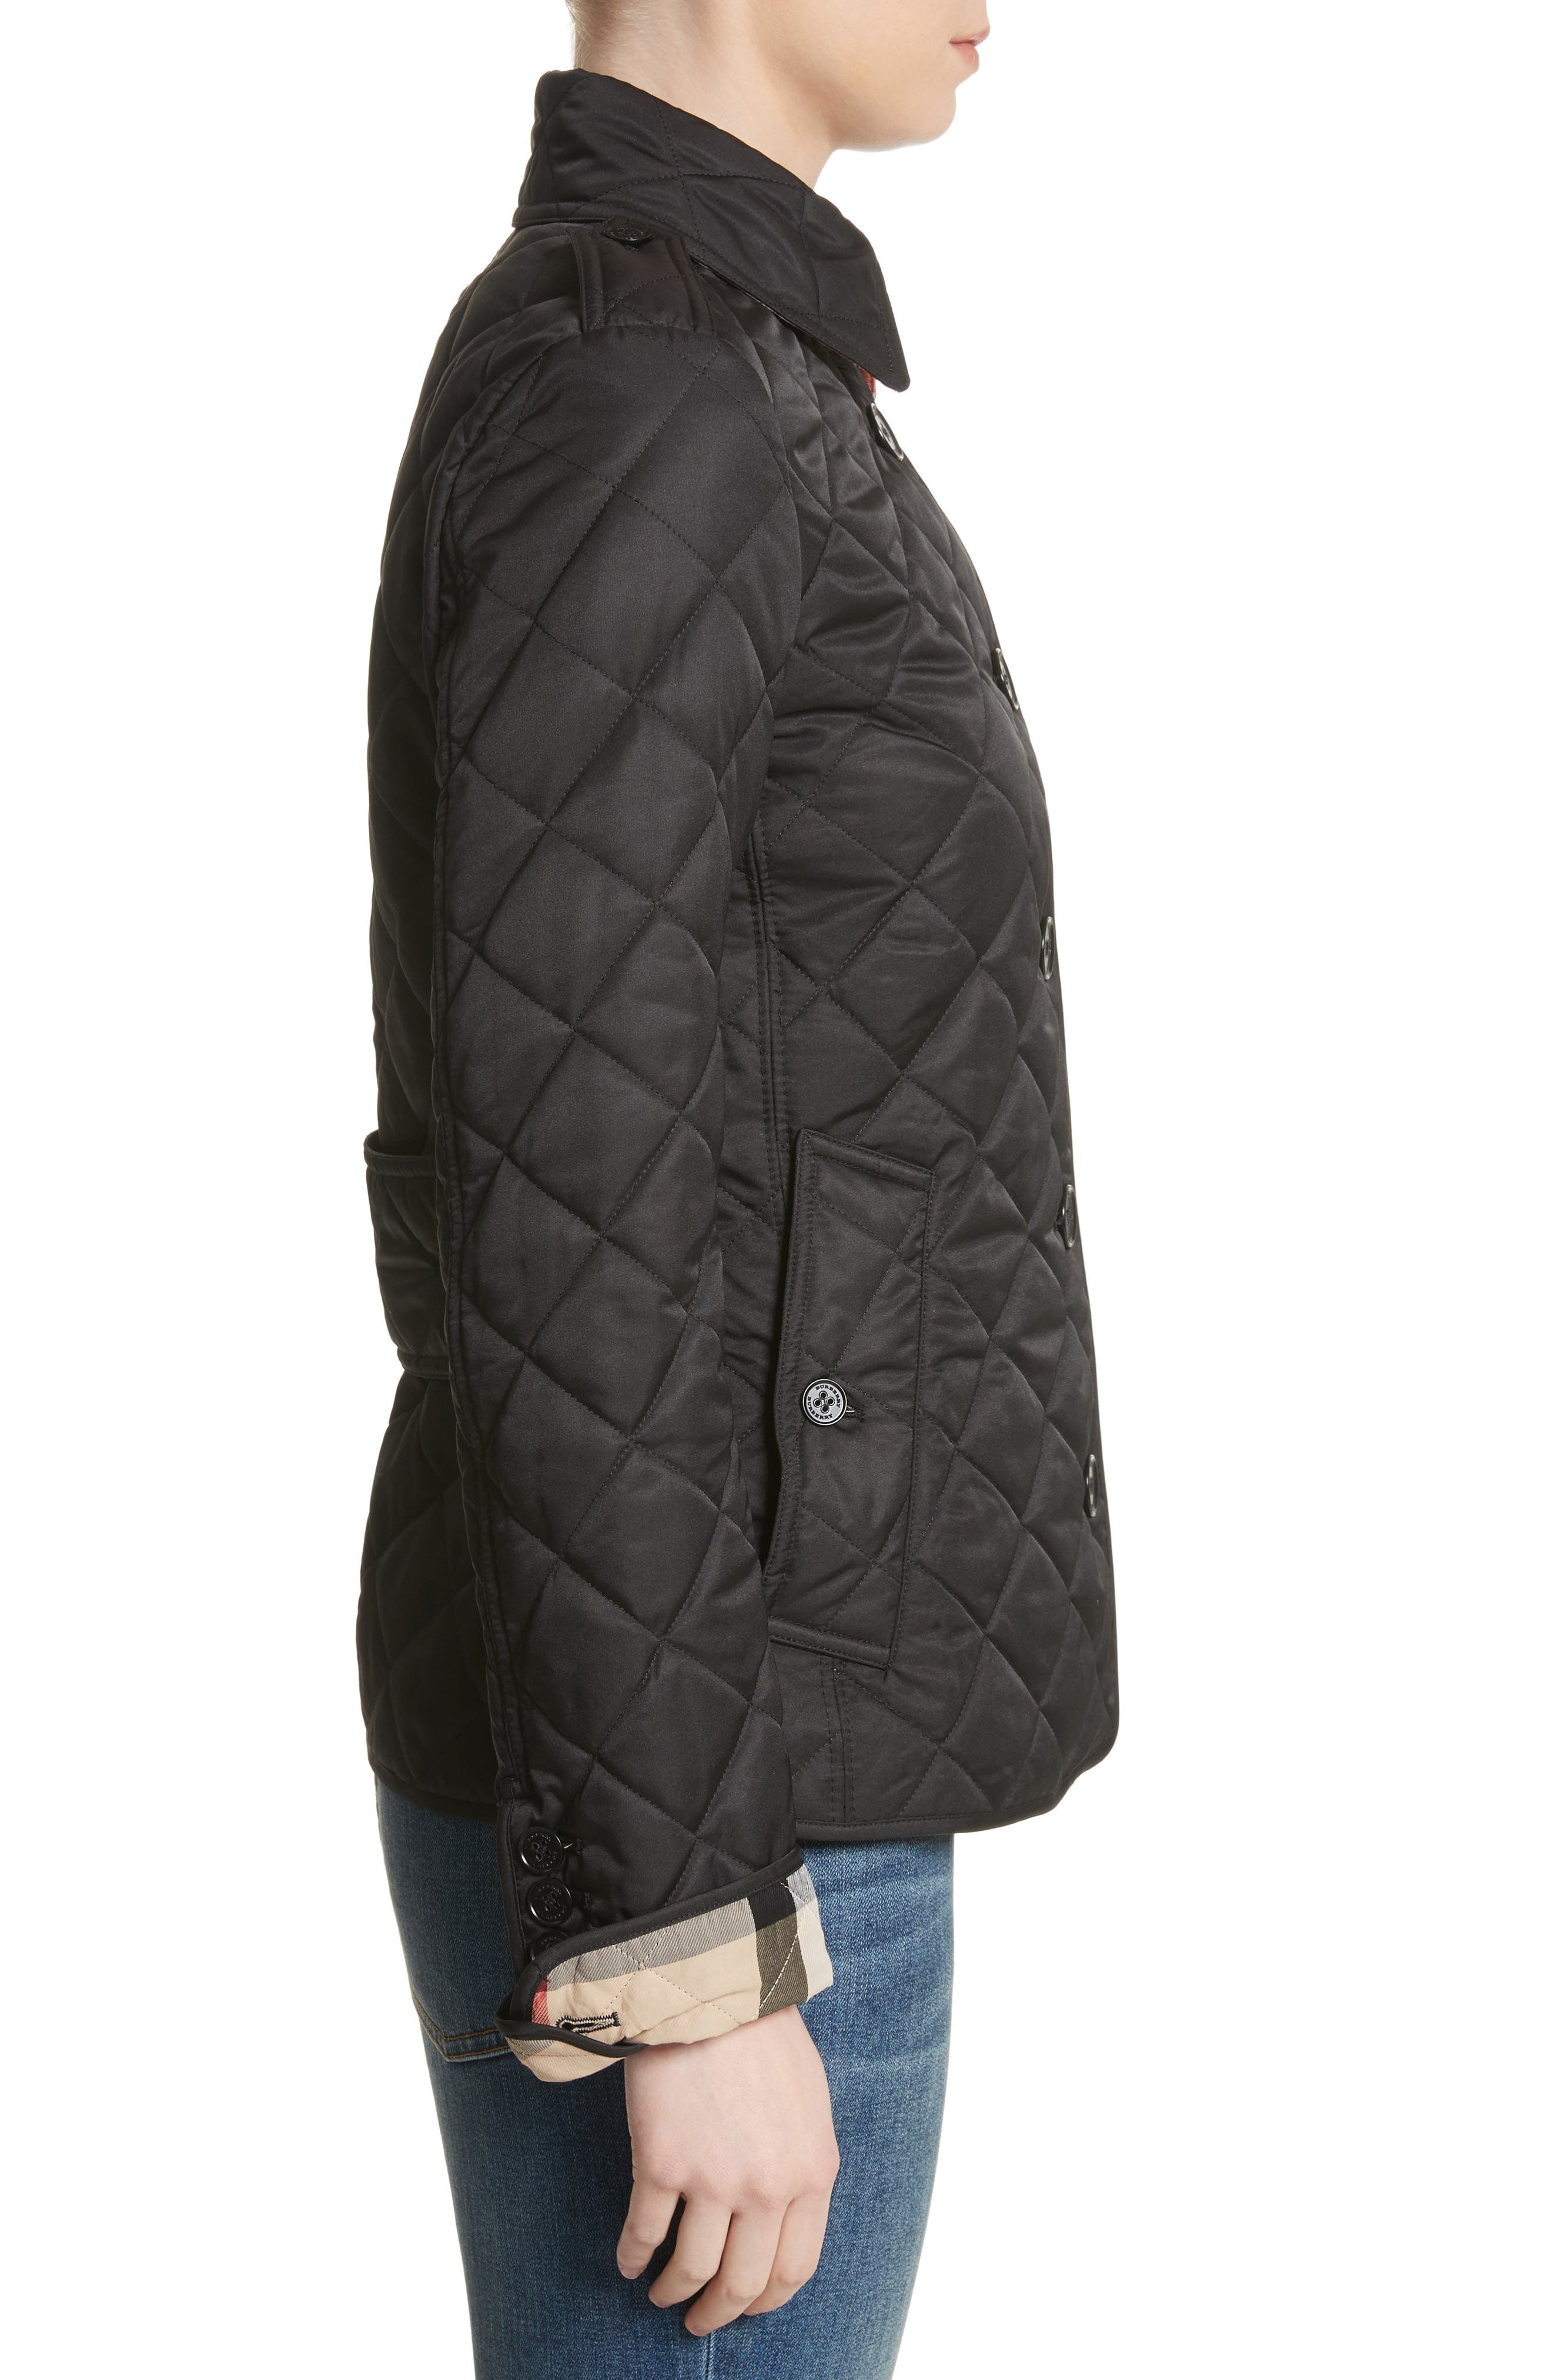 Frankby Quilted Jacket,                             Alternate thumbnail 3, color,                             001